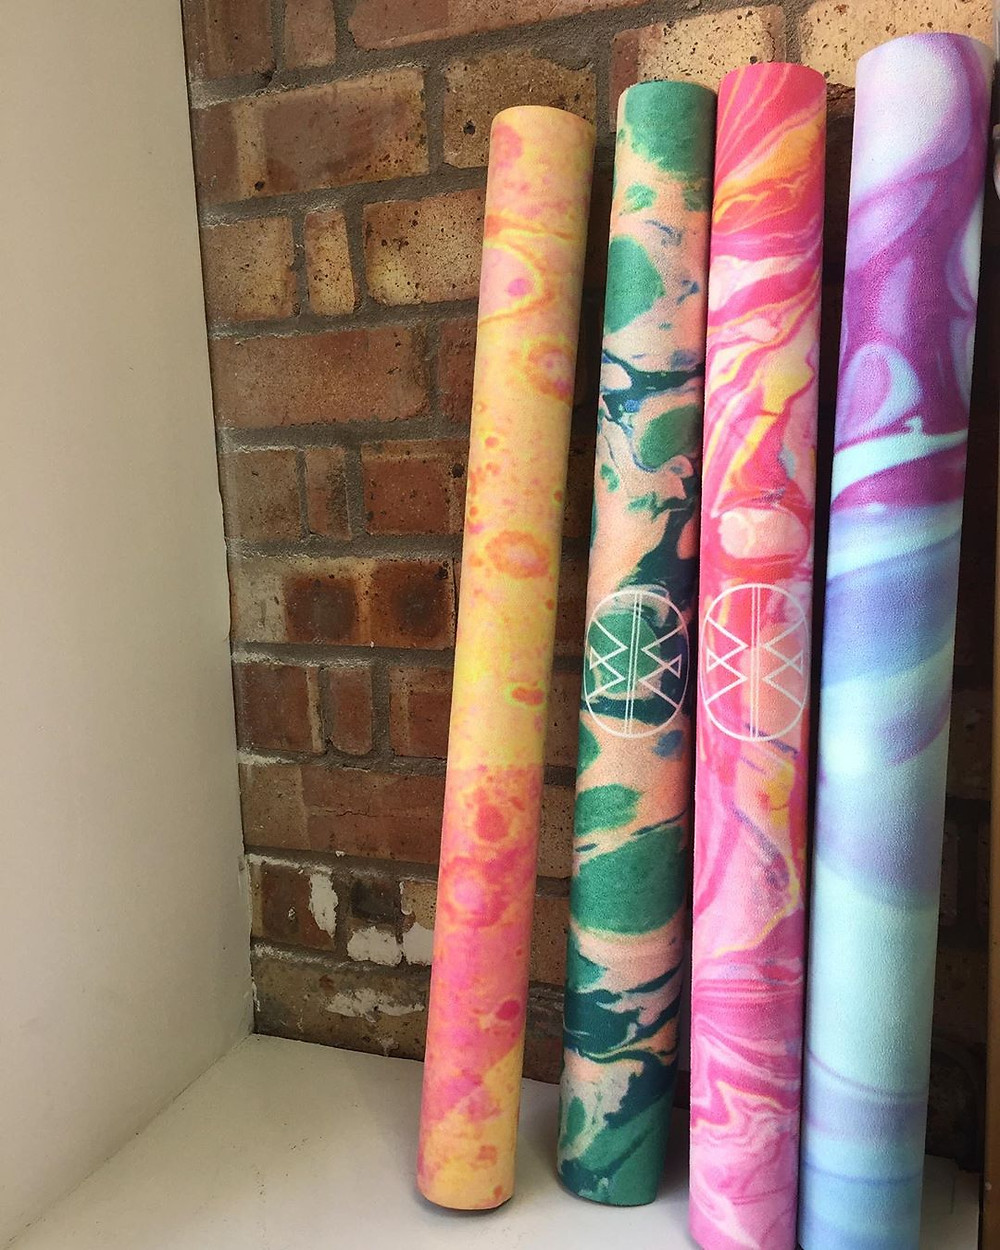 Wolf & Mermaid Eco-friendly and wonderfully unique Yoga & Meditation Mats, Bolsters, Cushions & Eye Pillows, drenched in abstract art designs and colours for conscious beings and wild souls.  All products are eco-friendly made with non toxic dyes and 100% organic filling.